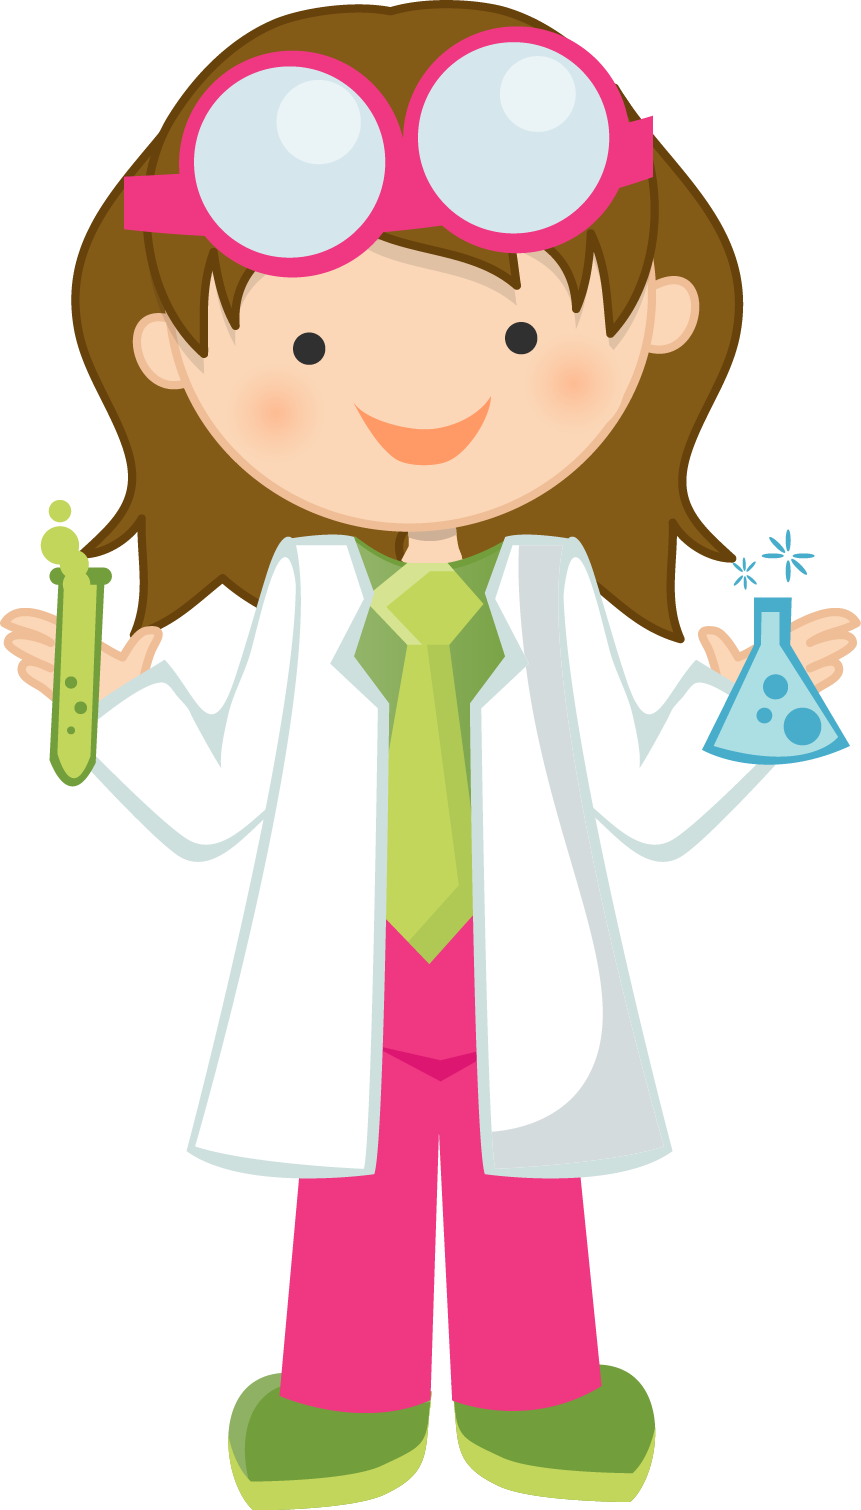 clipart black and white Women mad scientist pencil. Science kids clipart